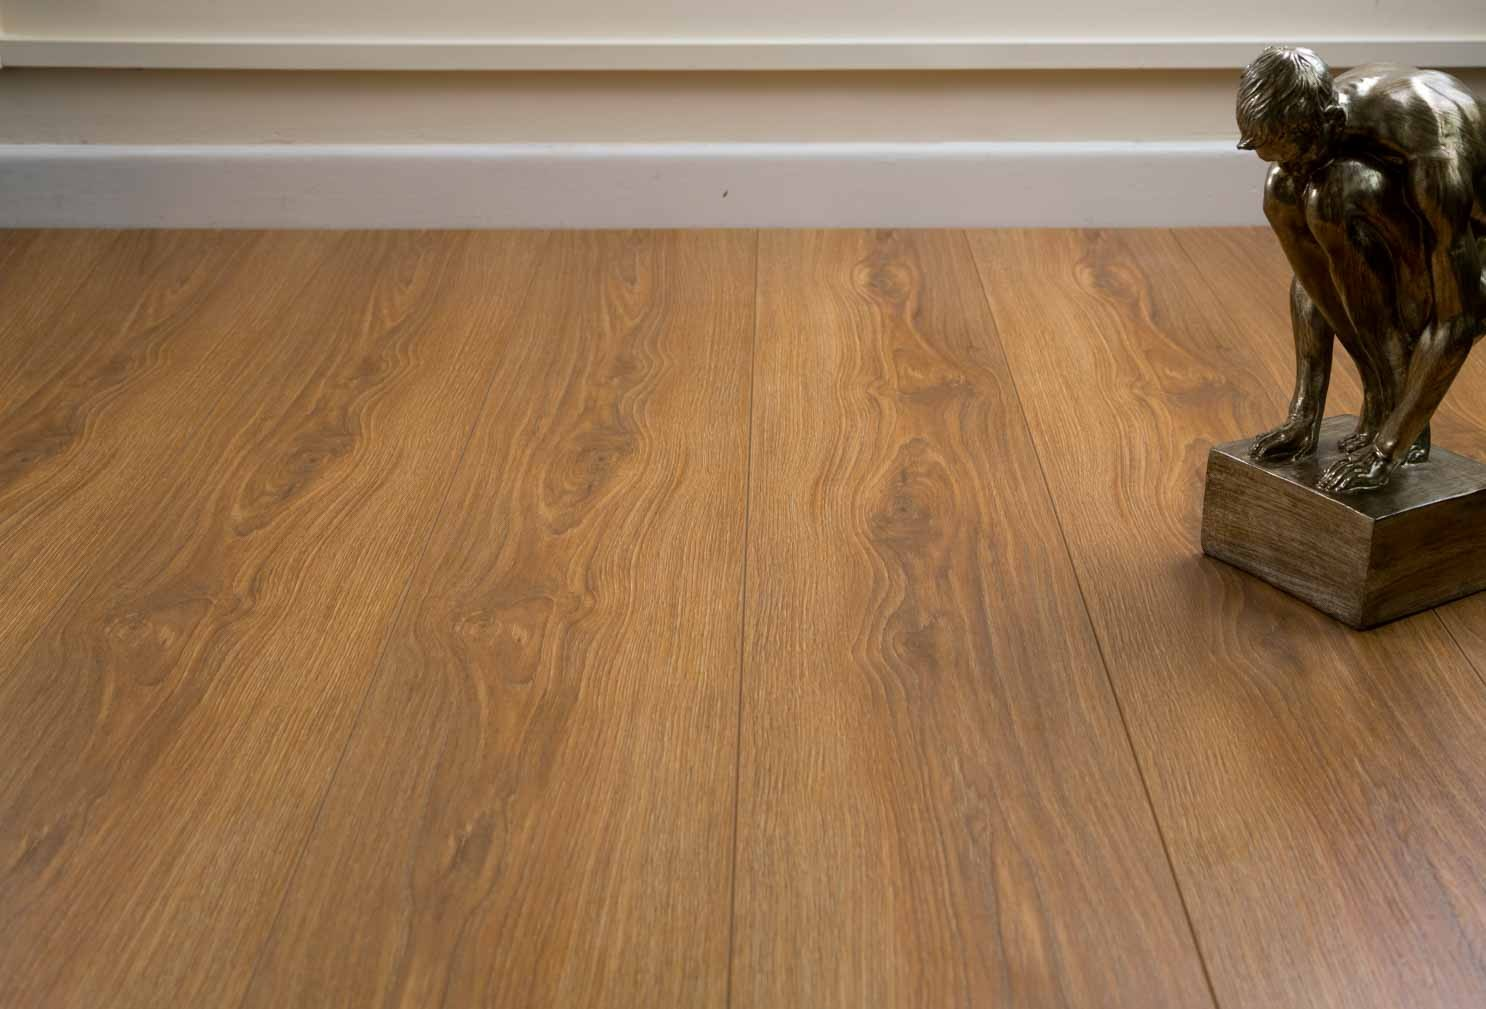 laminates floor burnbury 12mm french oak laminate flooring GWOTRCN